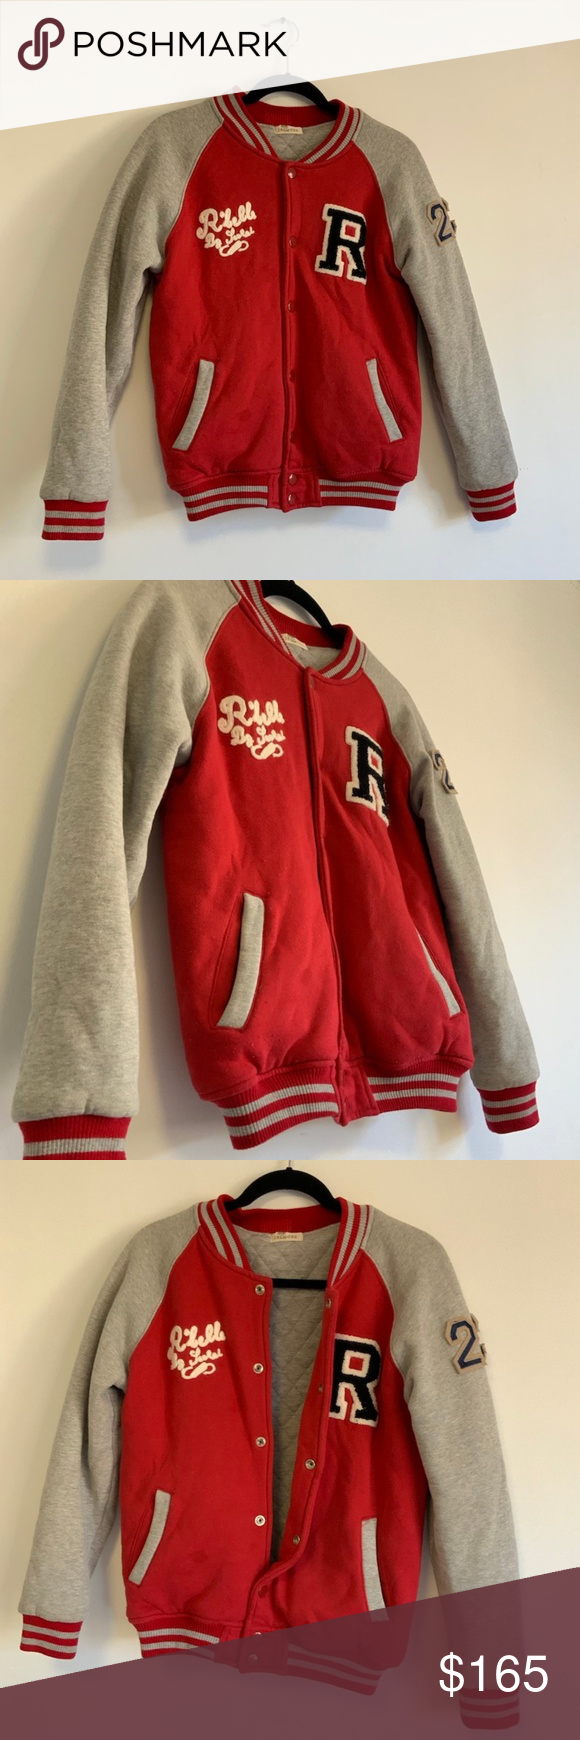 Red Varsity Jacket (vintage) Comfy red vintage varsity jacket Jackets & Coats #varsityjacketoutfit